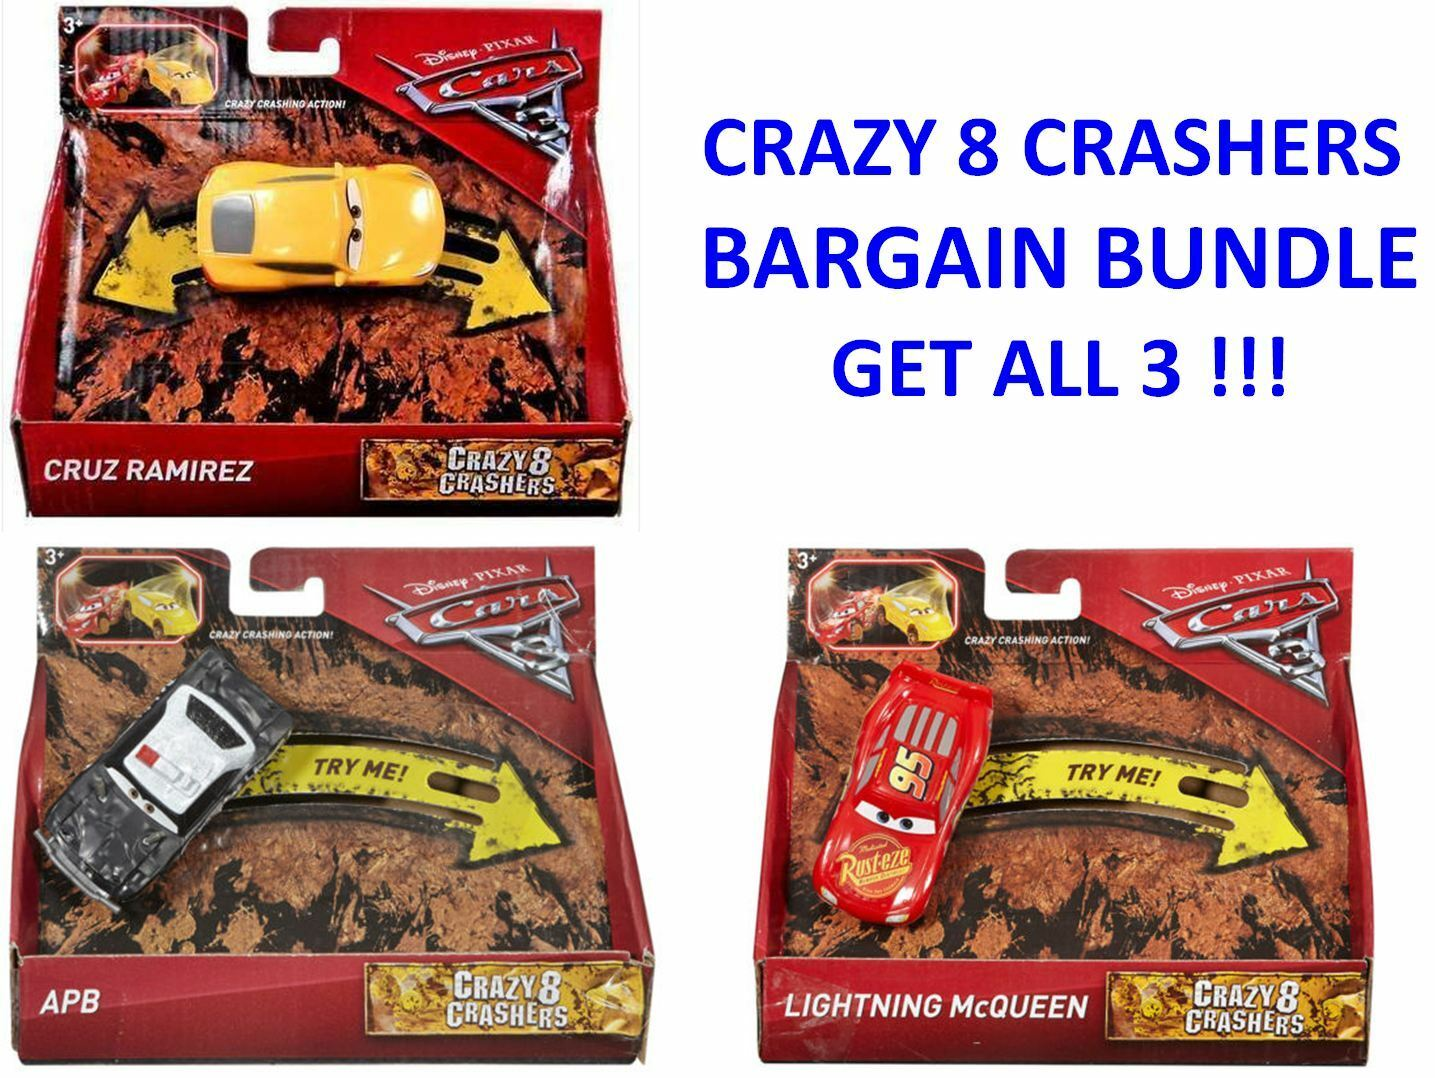 New Disney Pixar Cars 3 Crazy 8 Crashers Cruz Ramirez